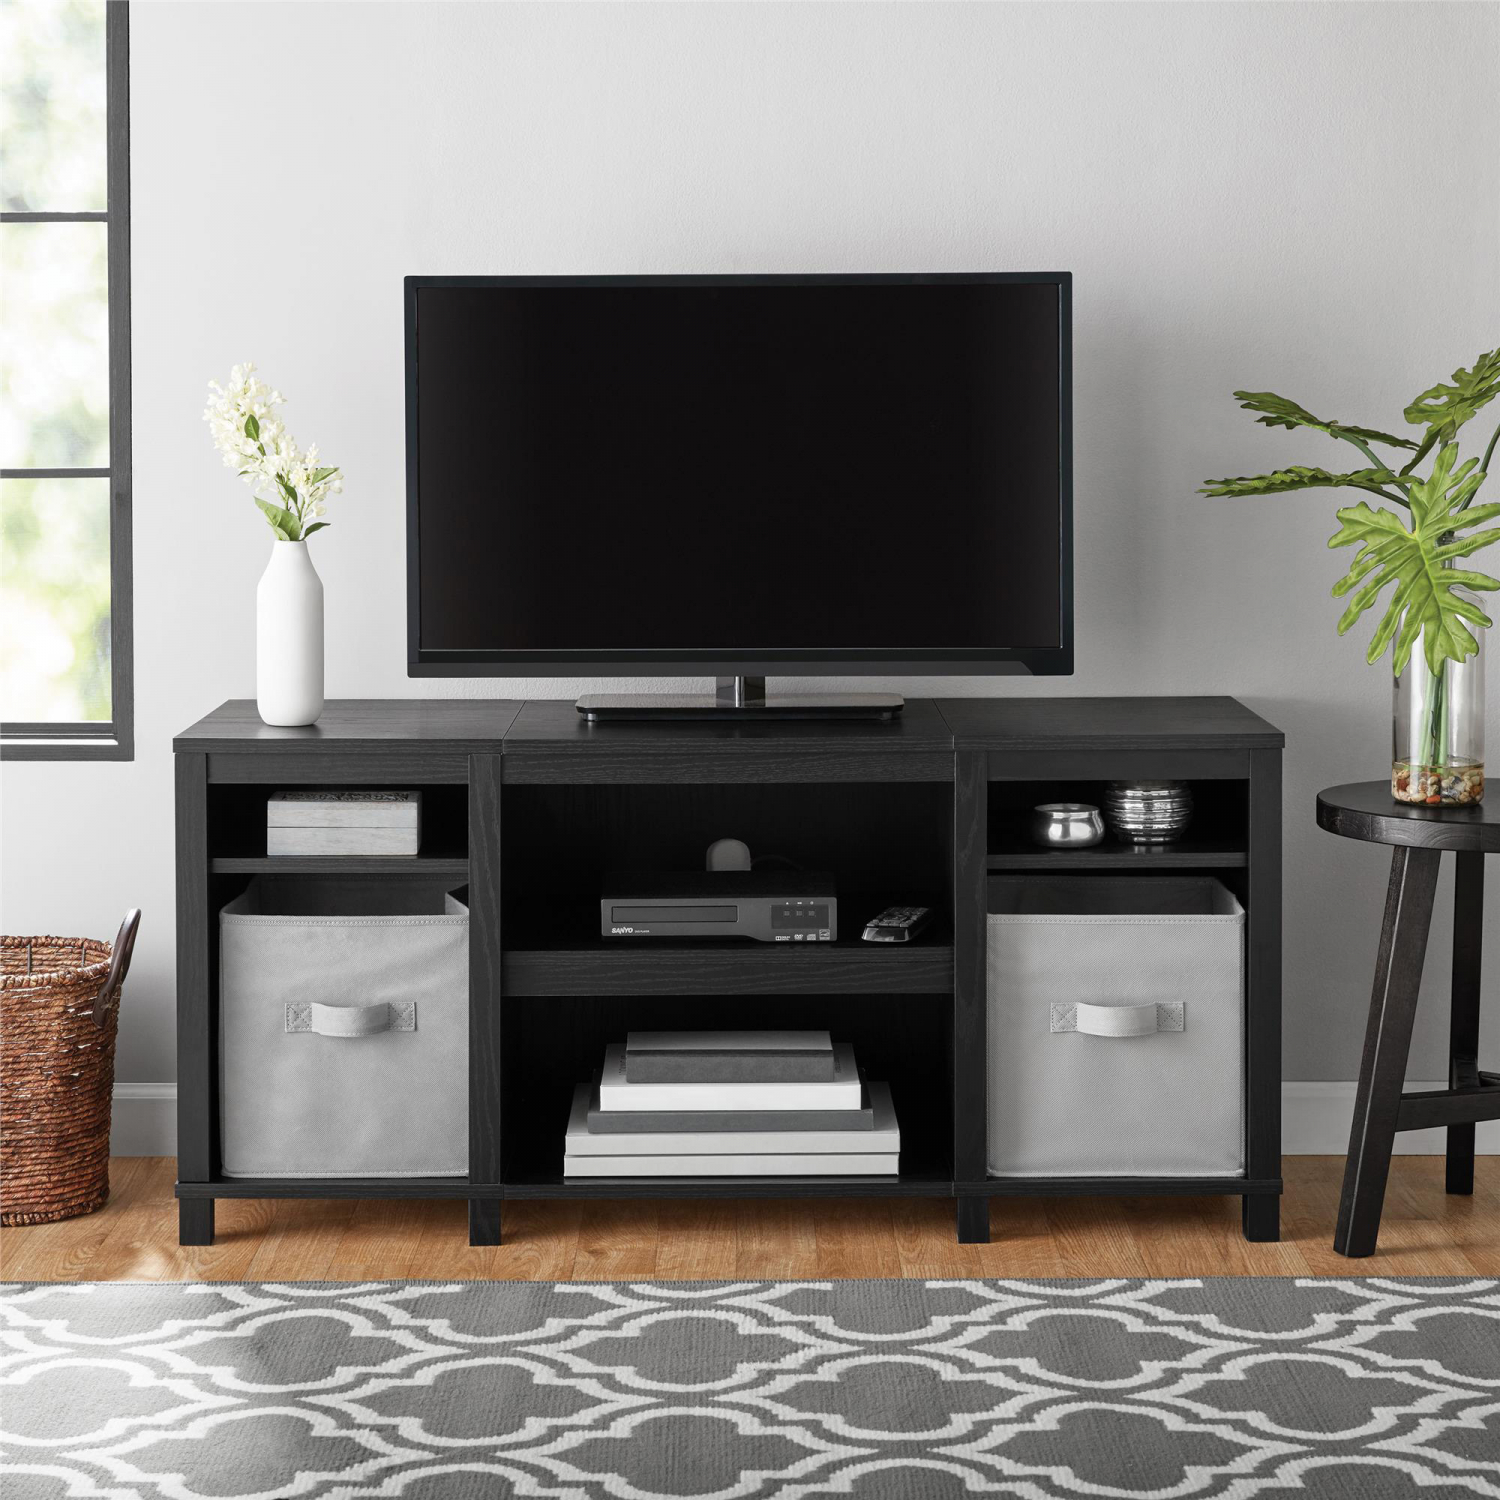 new style 86e43 591d0 Details about Entertainment Cubby TV Stand, up to 50 inch TV, Black Oak  Wood Finish Furniture